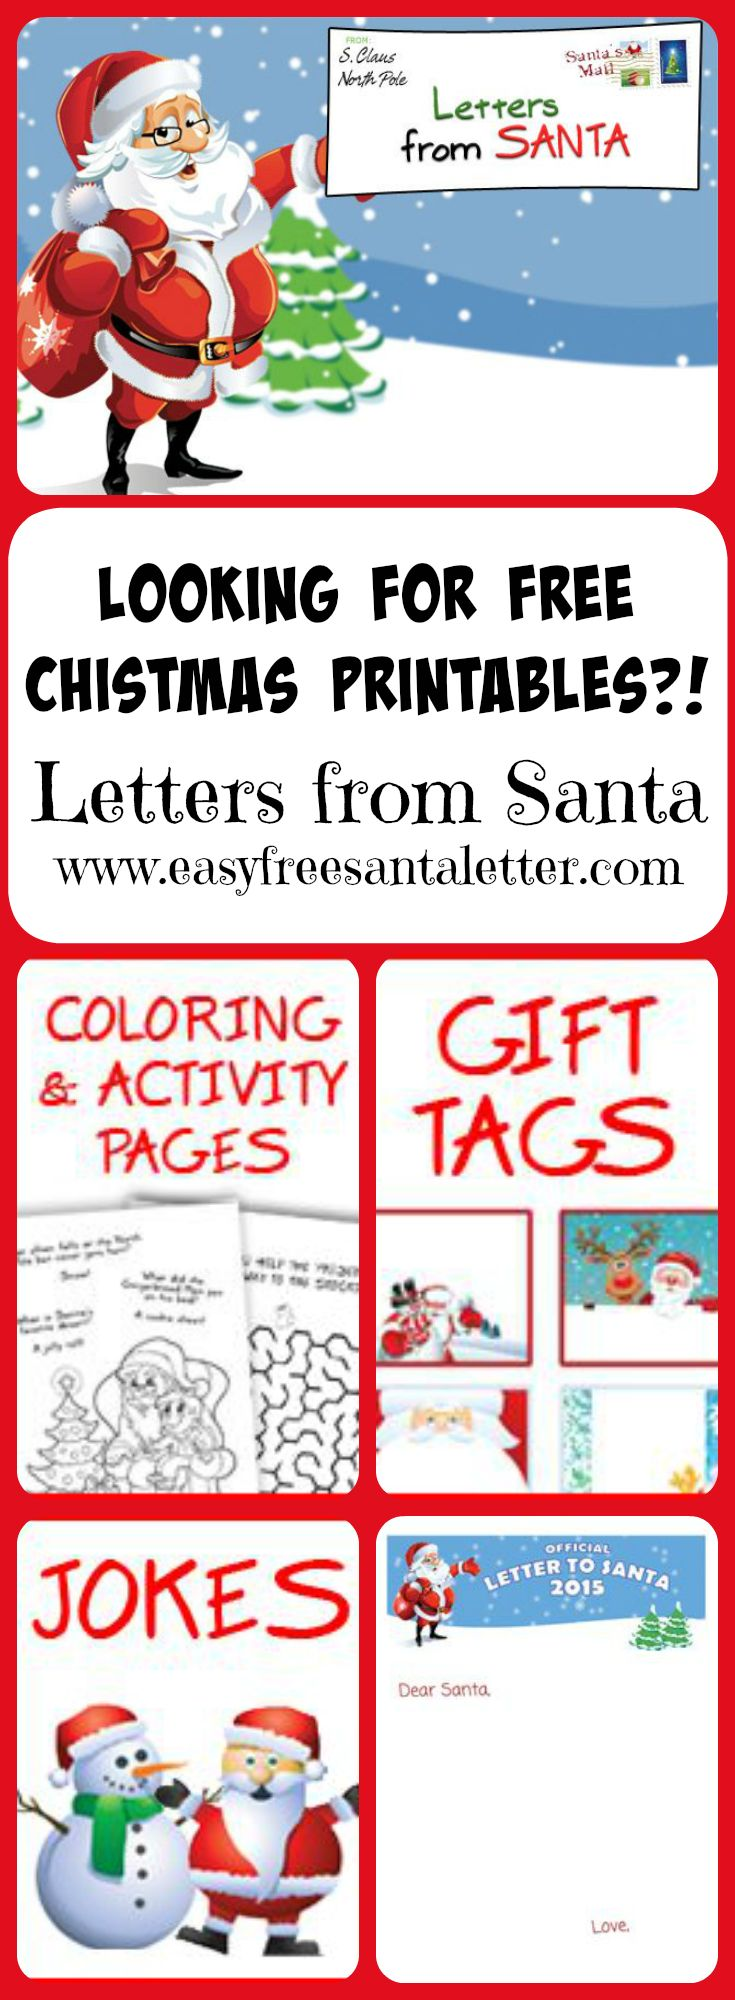 Free Santa Printables!! Need a Letter from Santa? A Letter TO Santa? Gift Tags? Coloring or Activity Pages? Santa's got 'em...come and get 'em! Take a minute and have a giggle on our jokes page while you are at it! | Letters from Santa | www.easyfreesantaletter.com